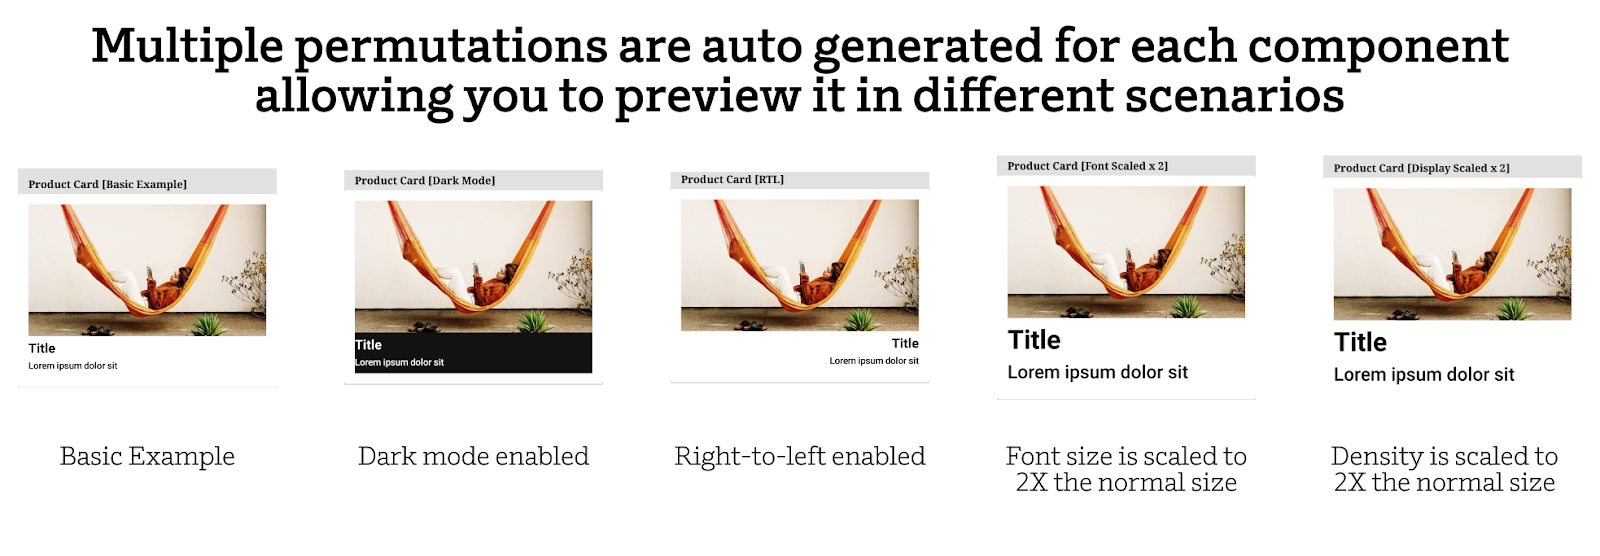 Multiple permutations are auto generated for each component allowing you to preview it in different scenarios